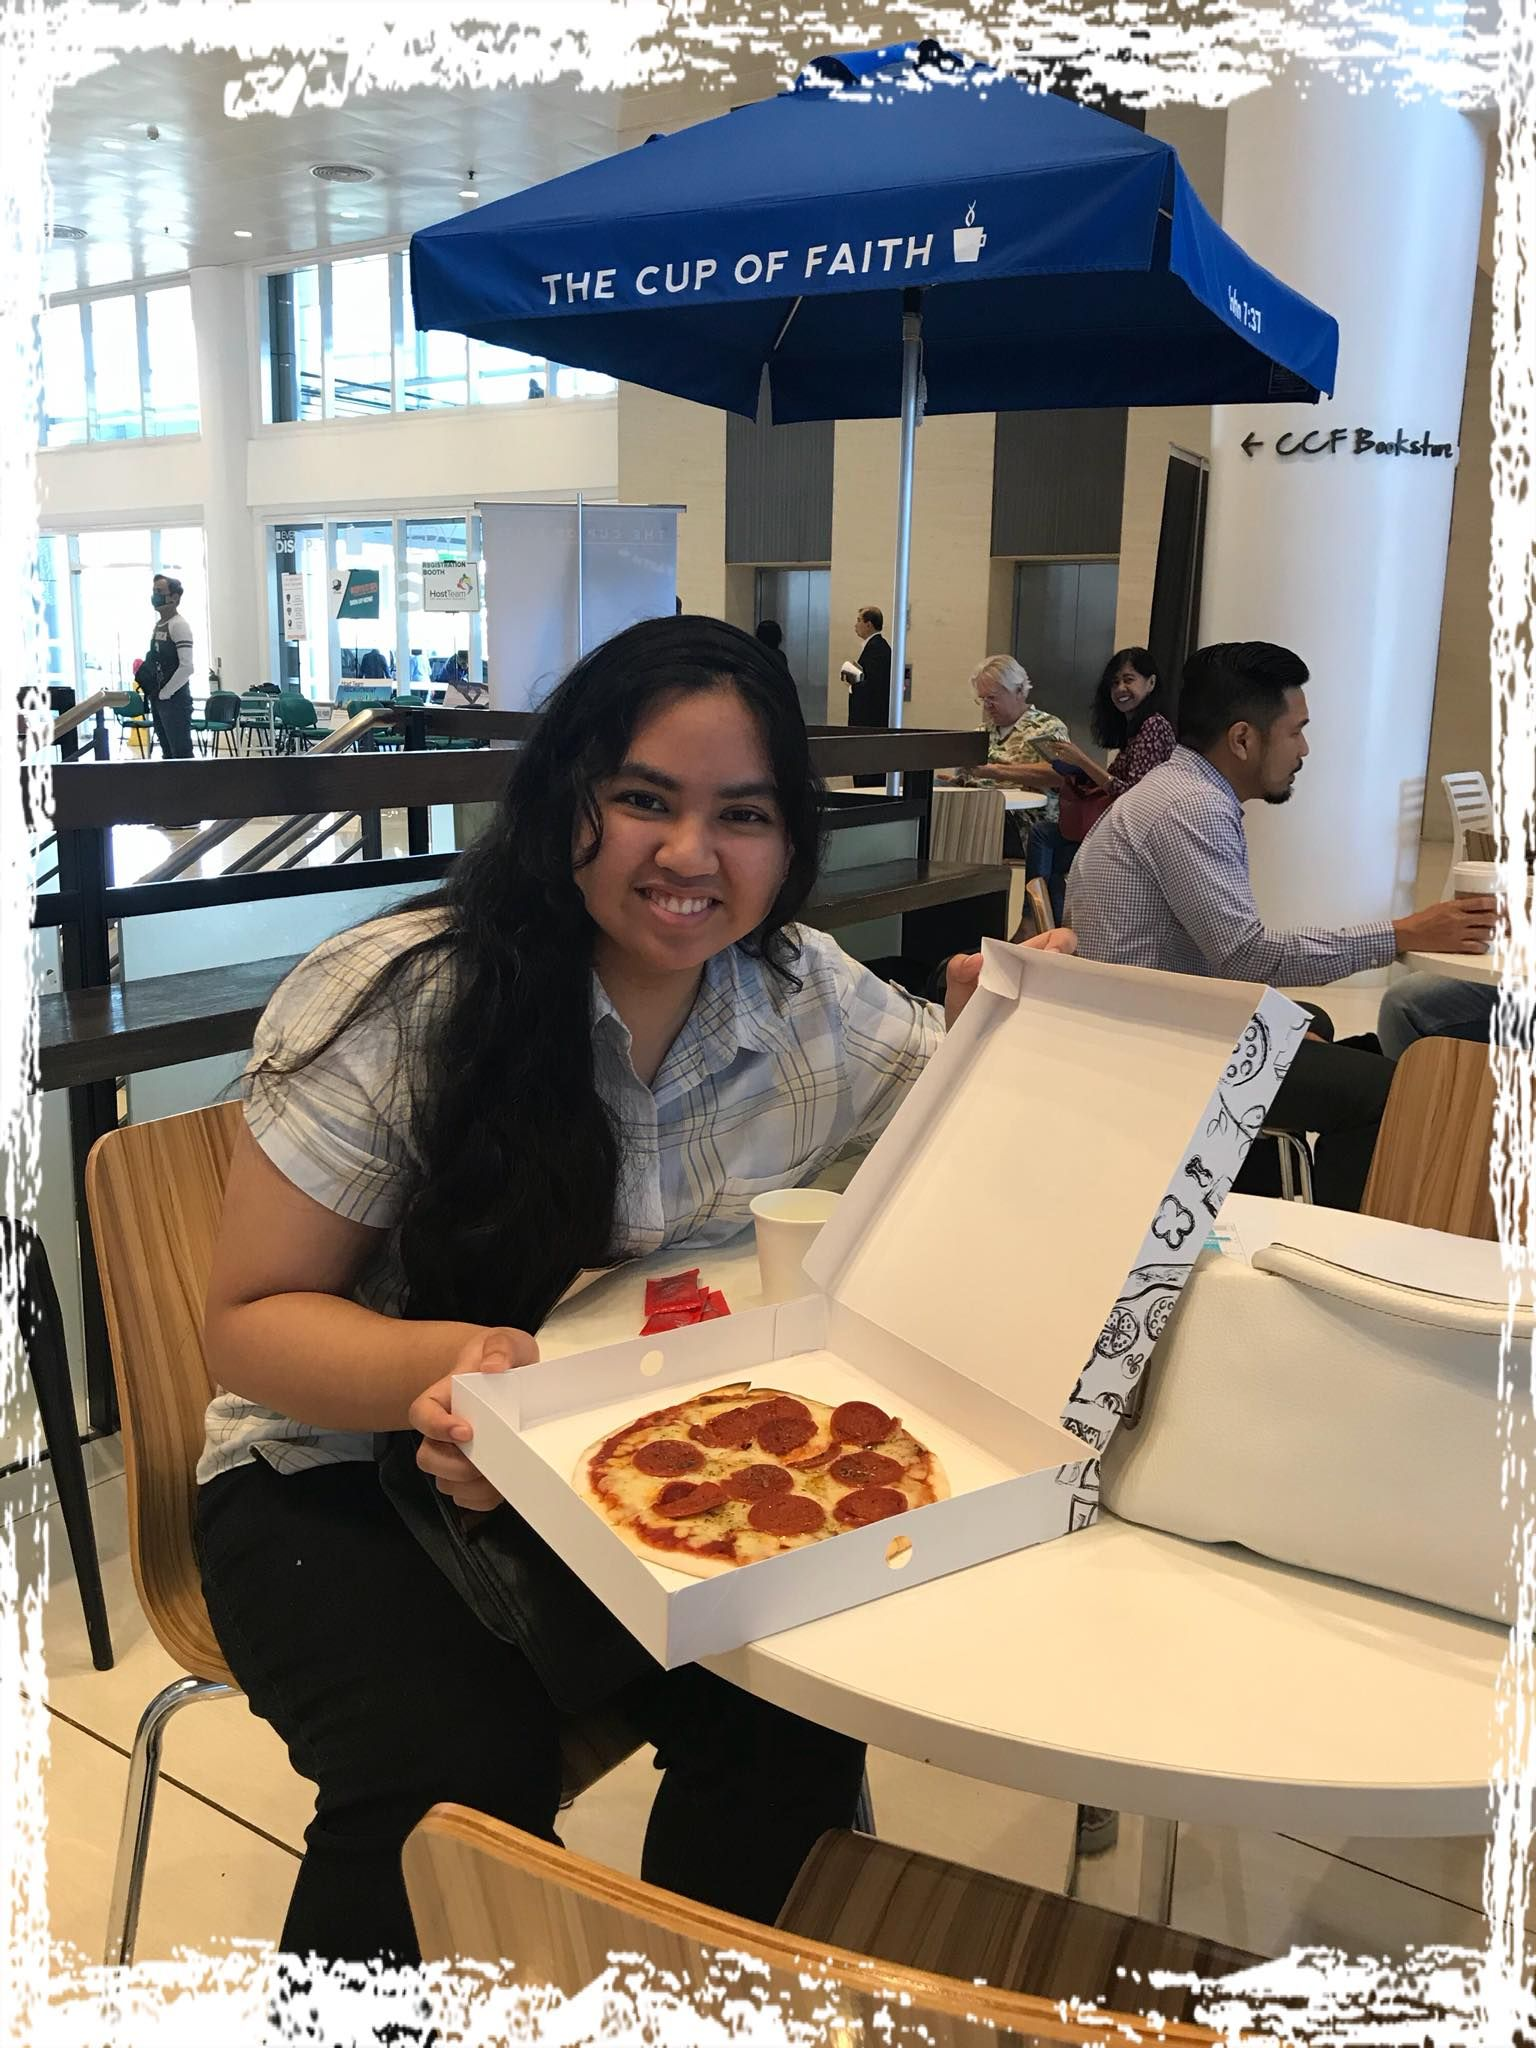 It's time for pizza at The Cup of Faith TheCupOfFaith